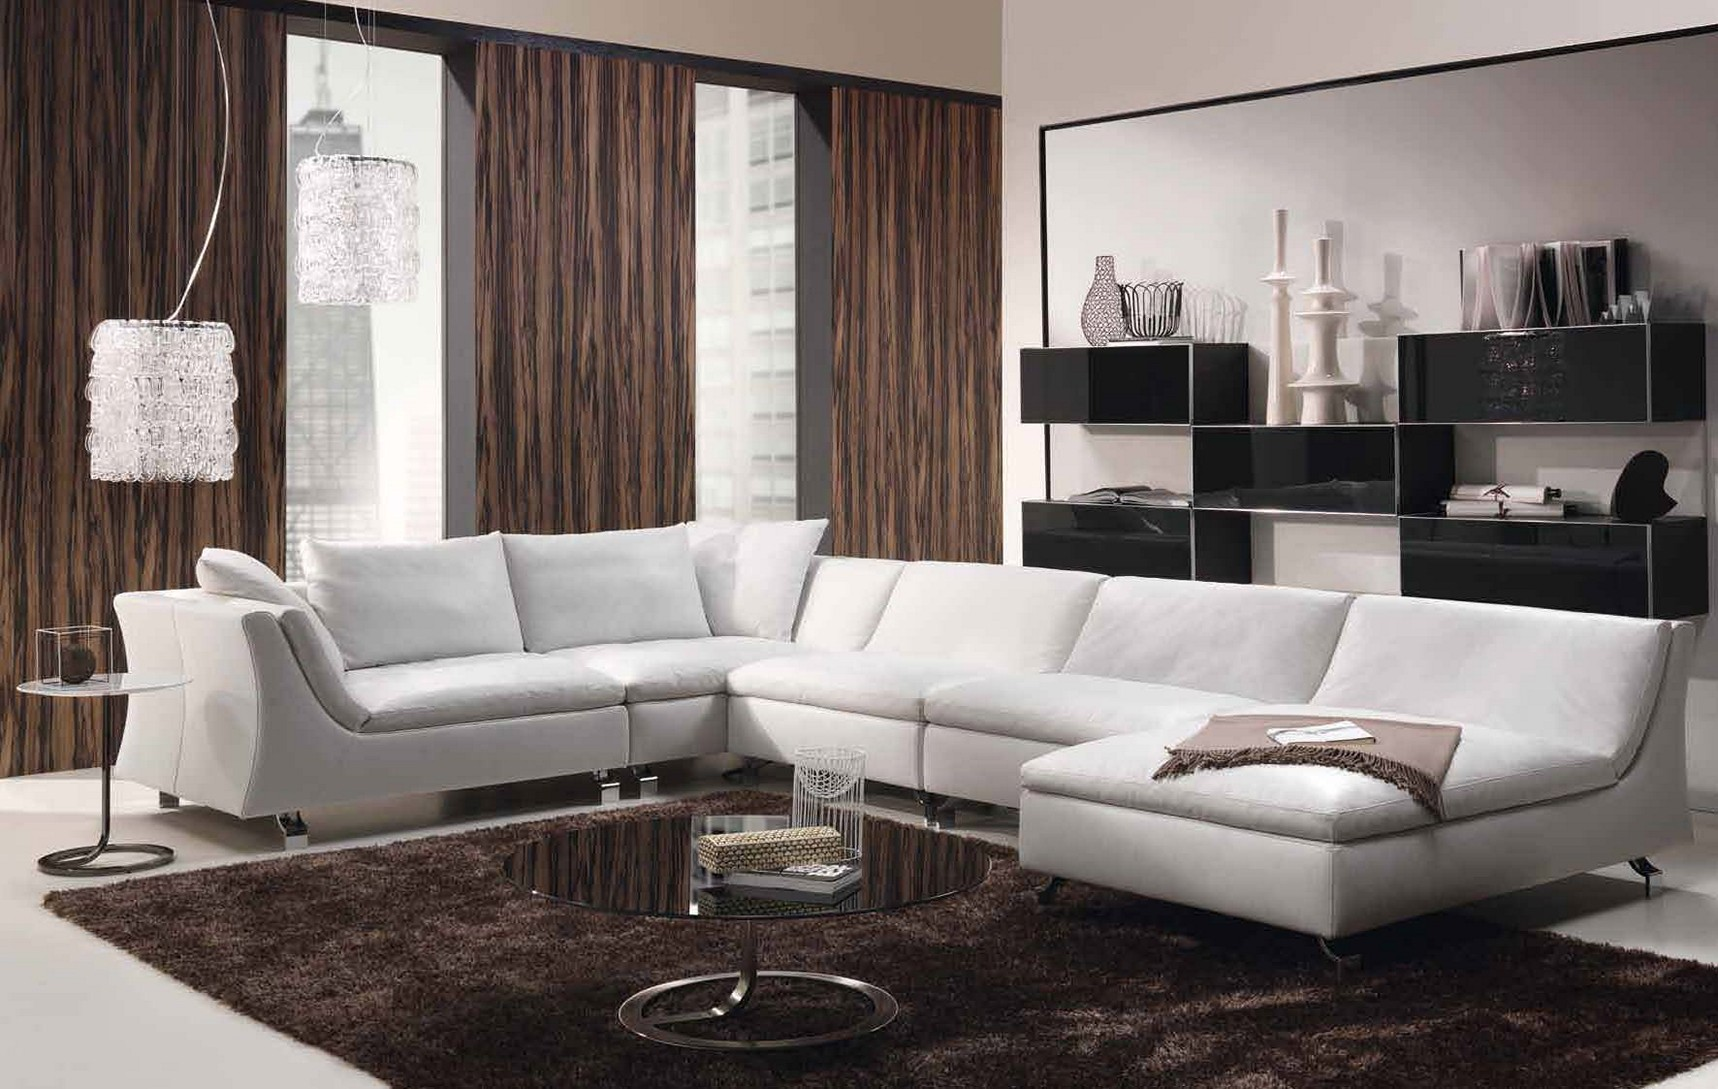 ... The Best And Cost Friendly Contemporary Living Room Furniture Dealers.  A Flowers Or Two Will Give More Live To The Room. All You Need Is Comfort  At Home ...